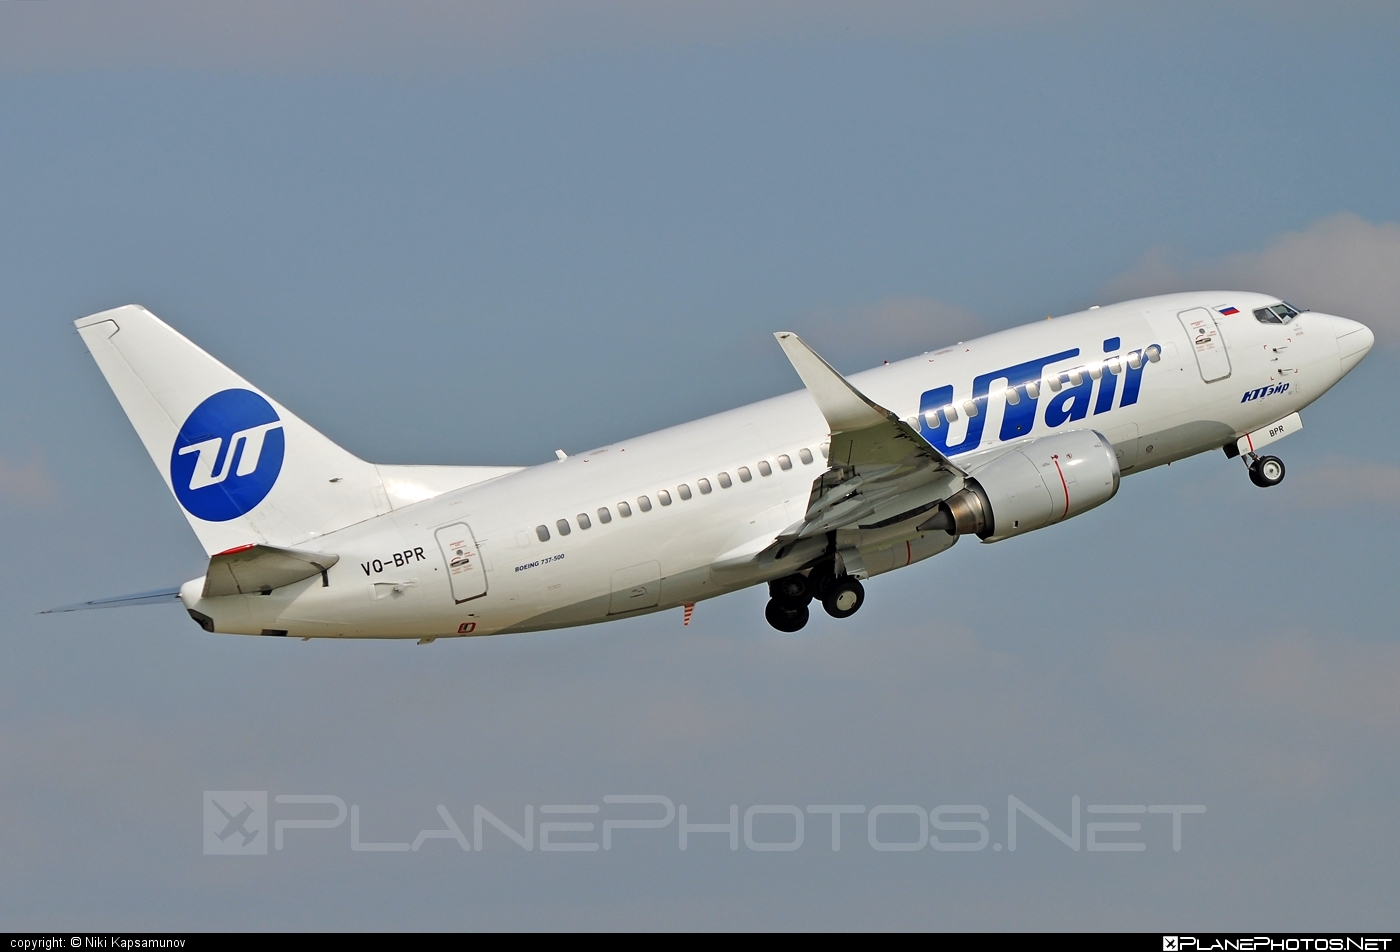 Boeing 737-500 - VQ-BPR operated by UTair Aviation #b737 #boeing #boeing737 #utair #utairaviation